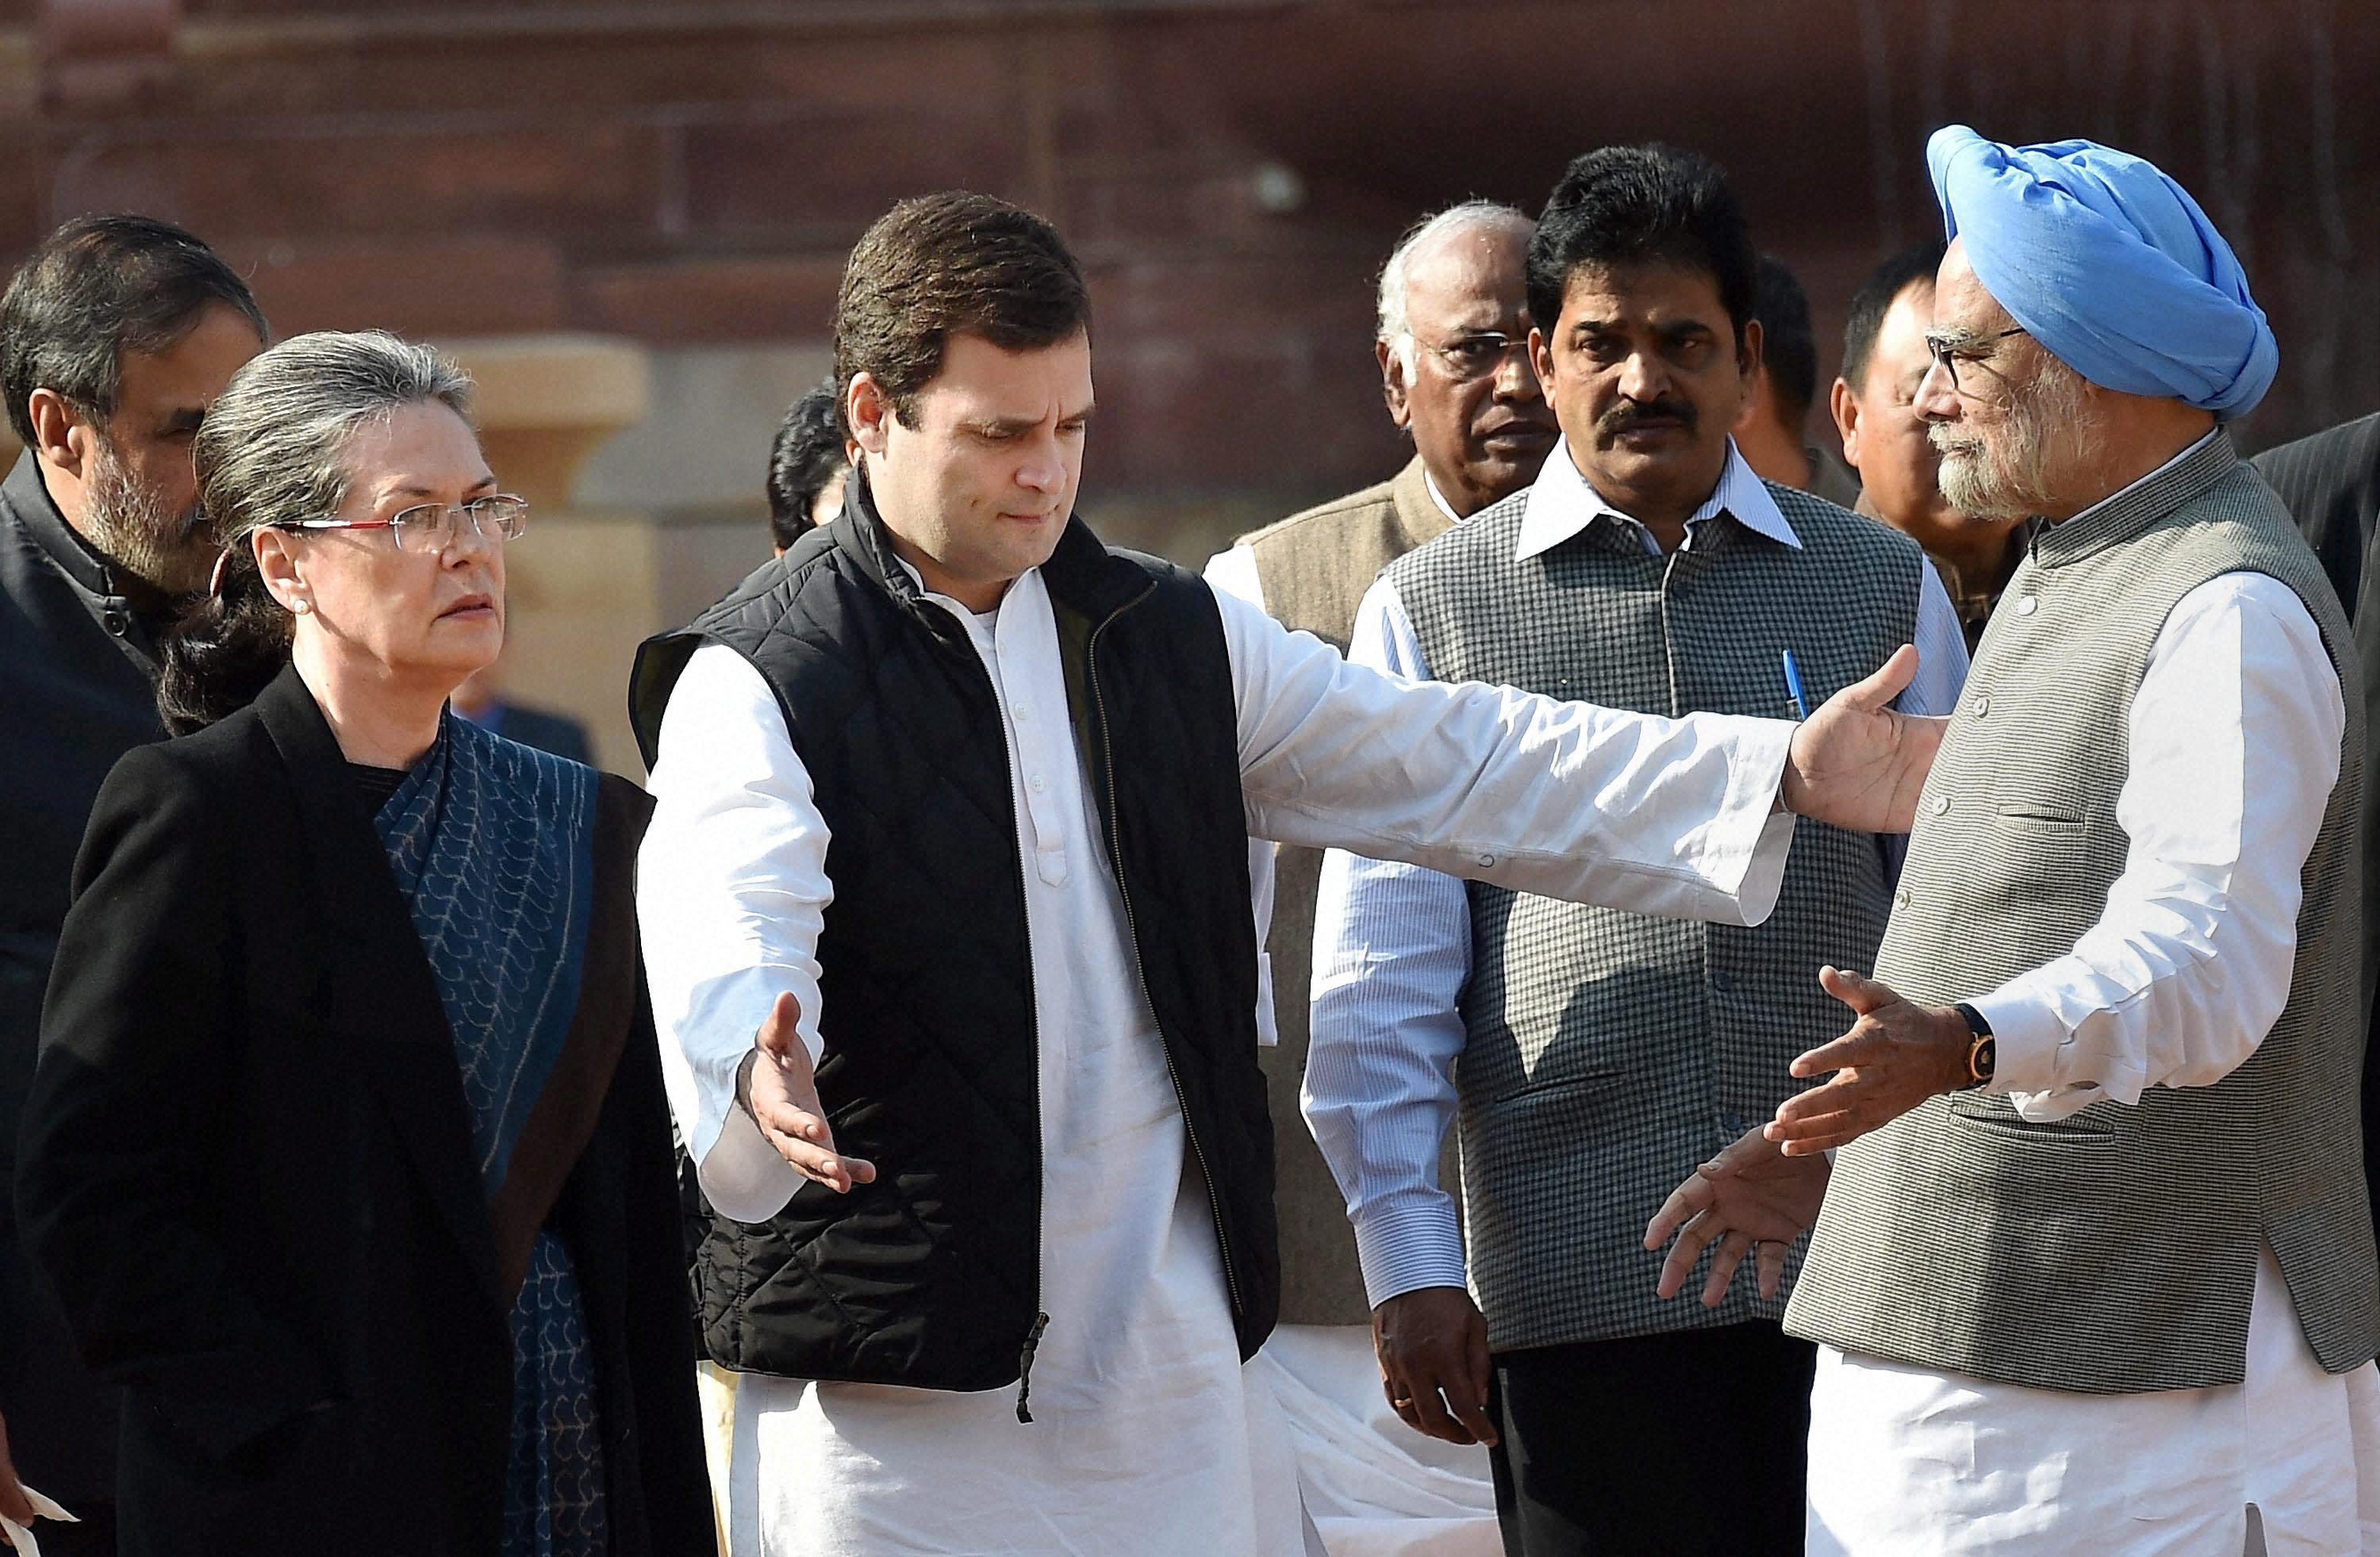 New Delhi: Congress President Sonia Gandhi with party Vice President Rahul Gandhi, former PM Manmohan Singh and other party leaders after meeting with President Pranab Mukherjee at Rashtrapati Bhavan in New Delhi on Wednesday. PTI Photo by Vijay Kumar Joshi (PTI12_16_2015_000065B)